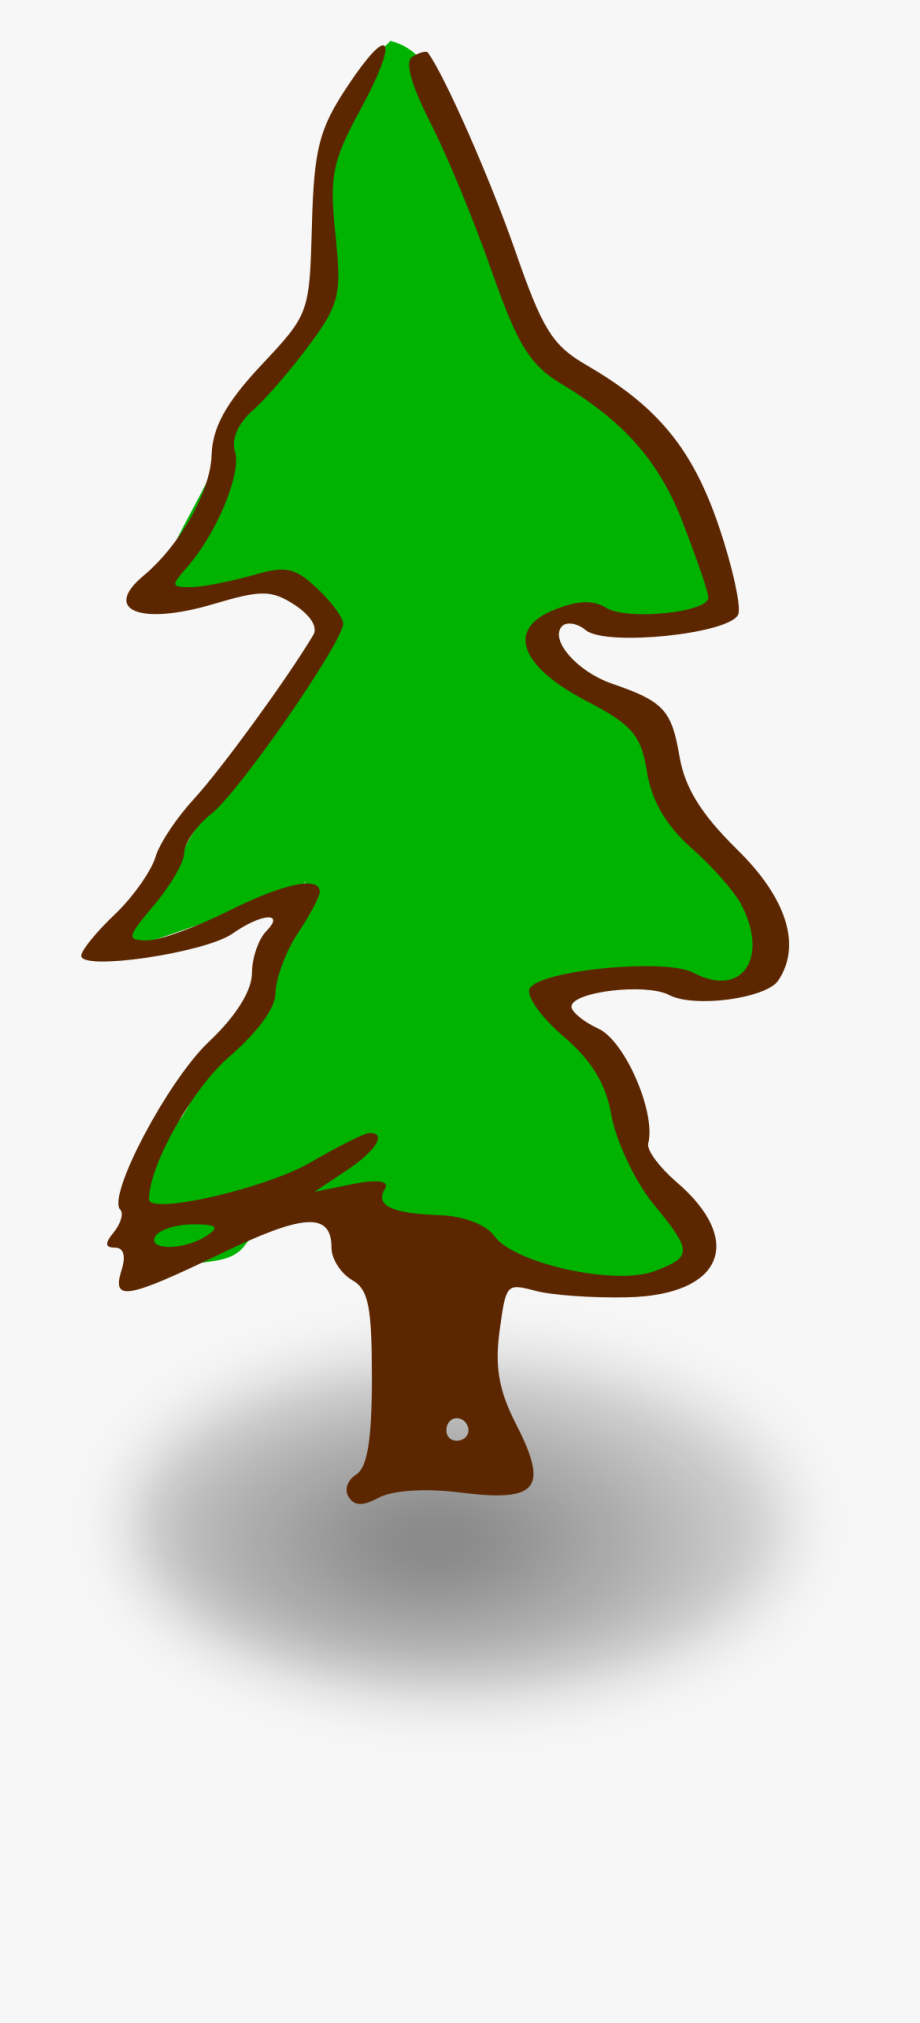 Forest icon clipart clip art stock Computer Icons Forest Pine Free Commercial Clipart - Cartoon Tree ... clip art stock